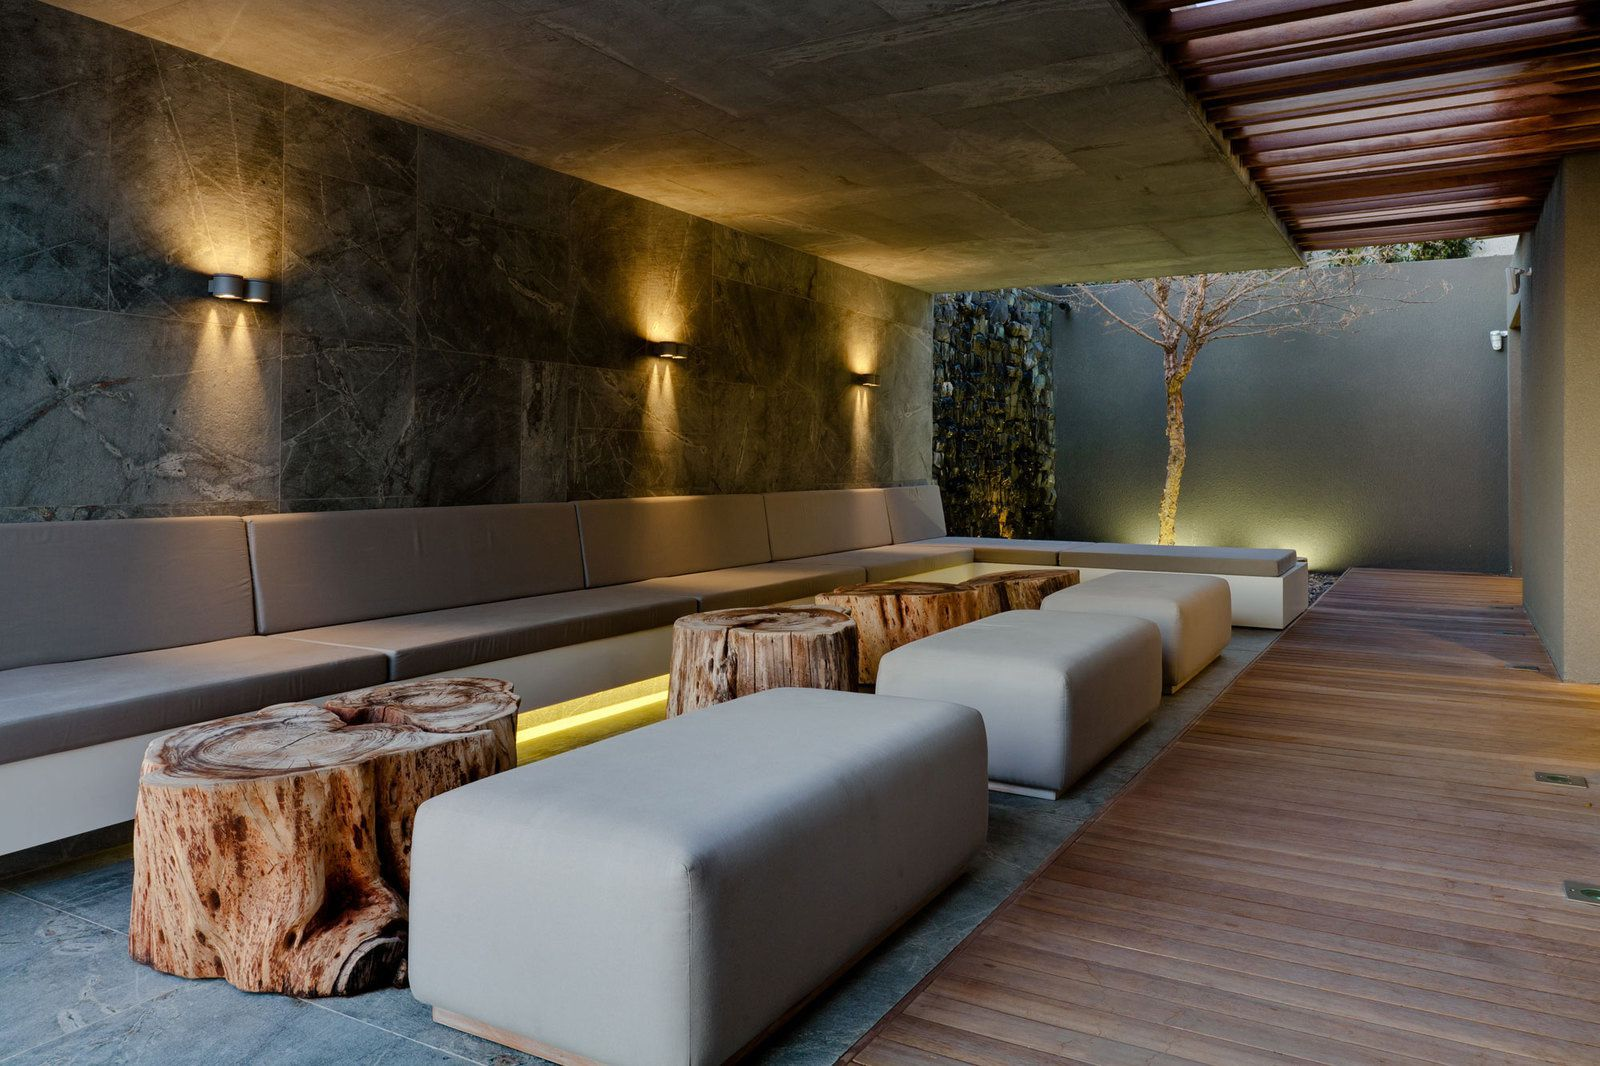 Design ext rieur terrasse couverte la maison de miss for Design boutique hotels colroy la roche